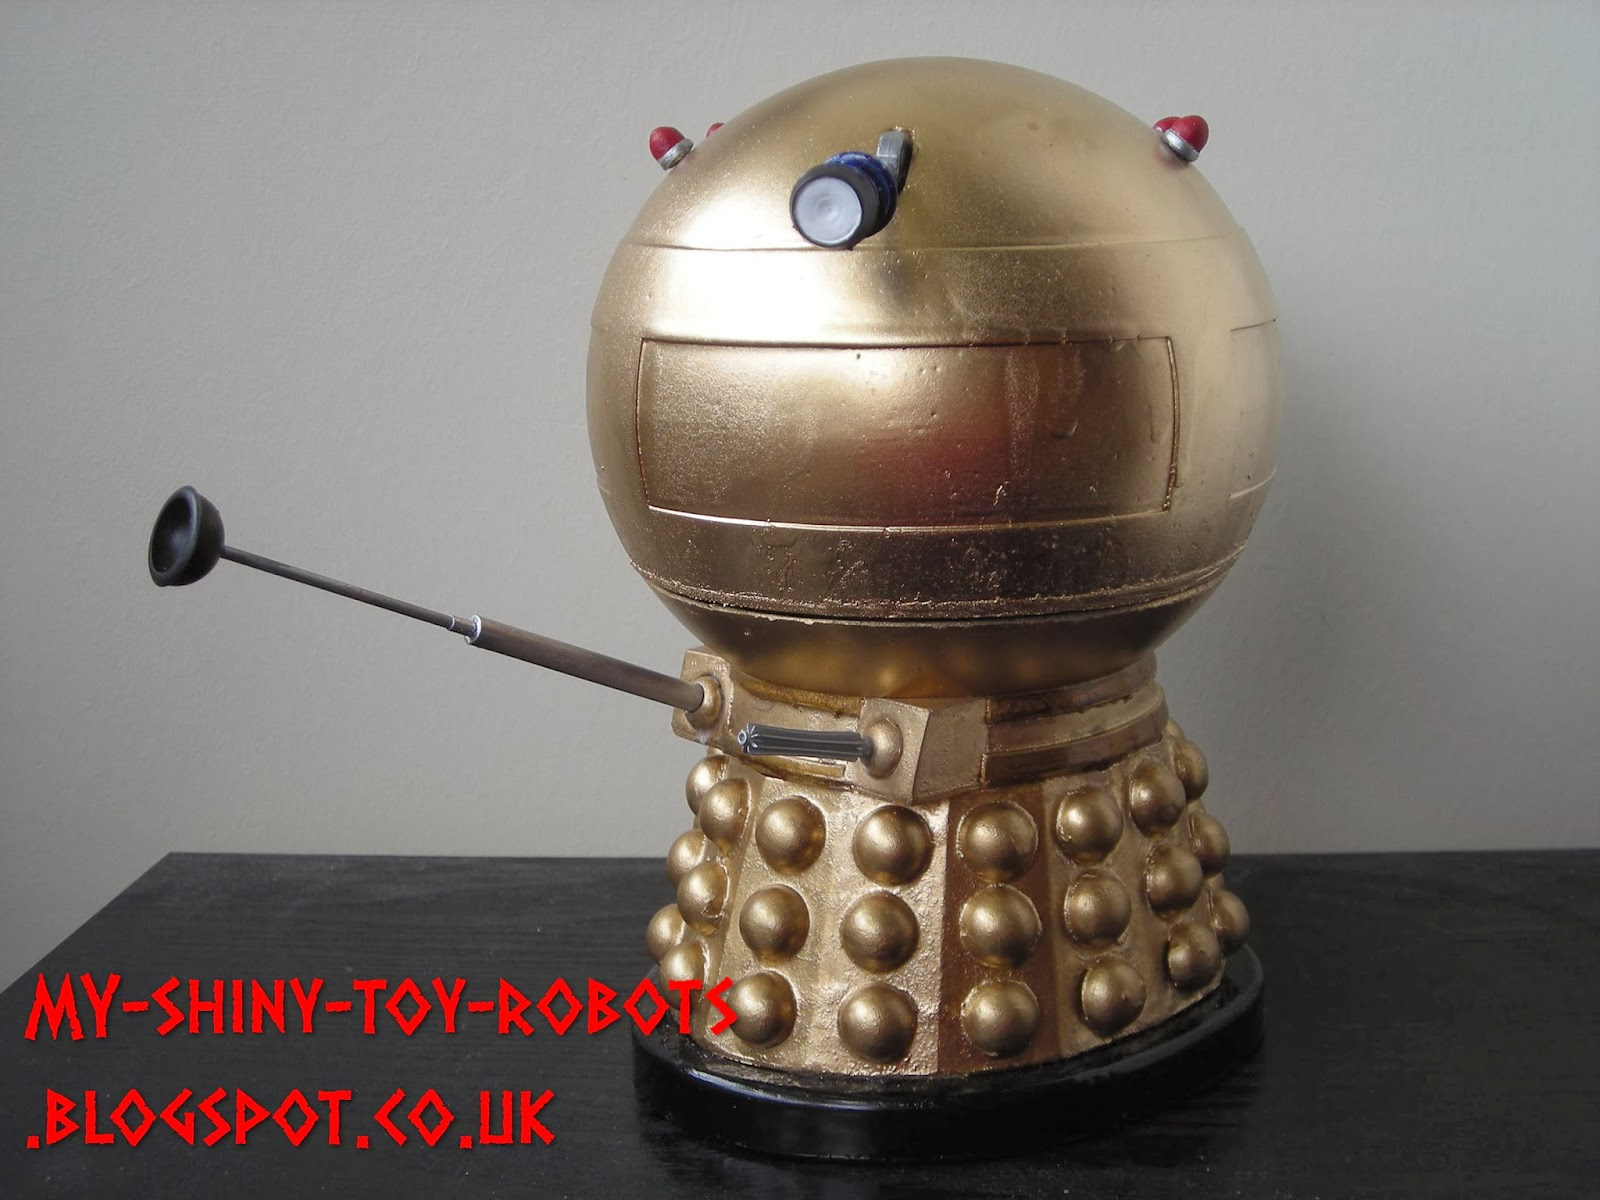 The first Dalek leader